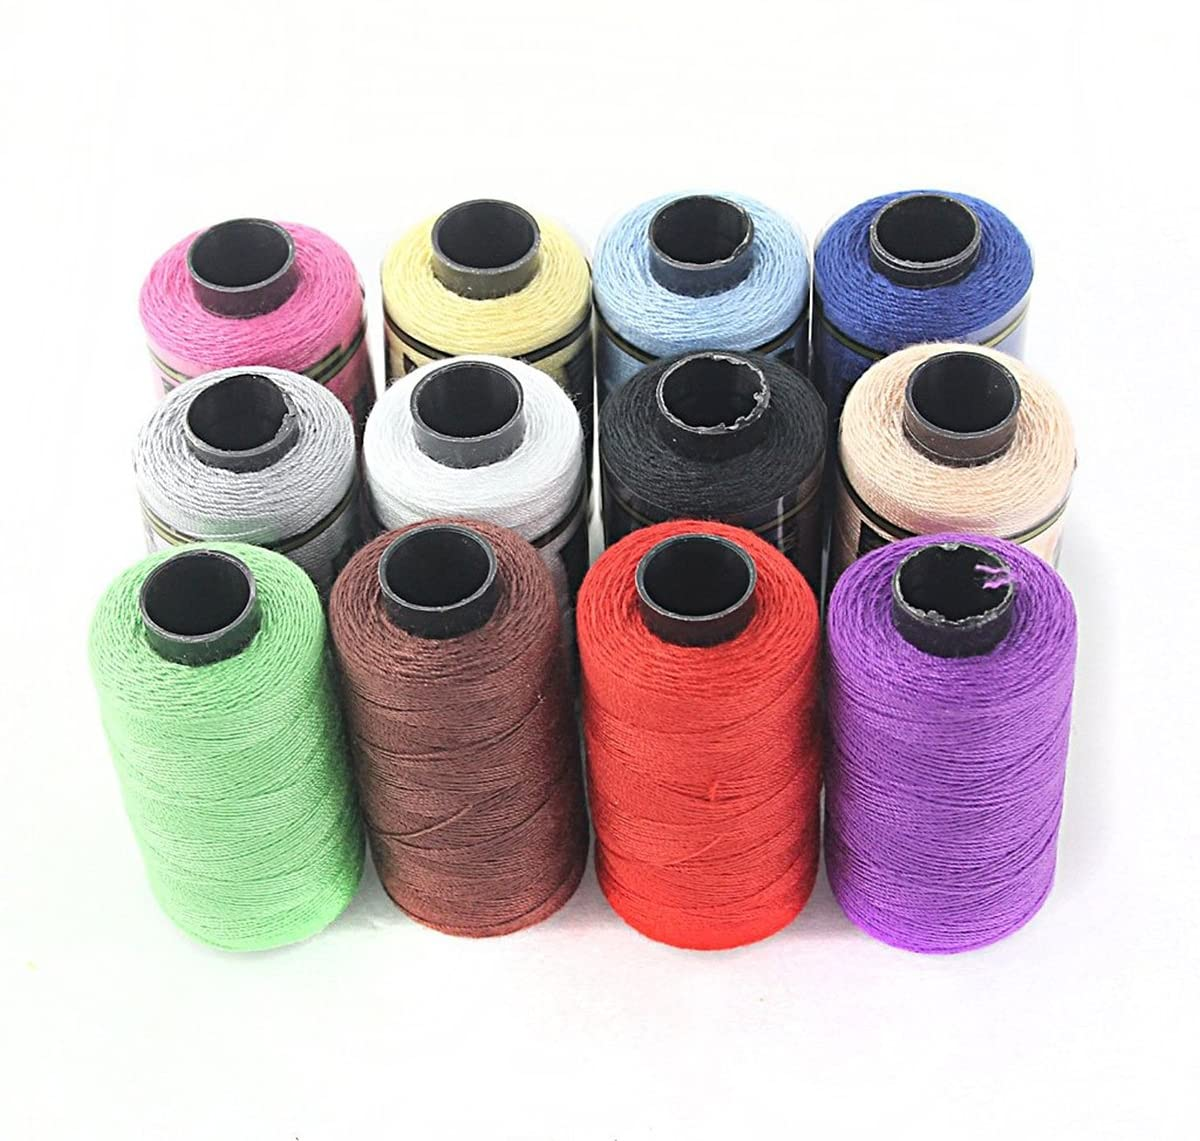 ROSENICE Sewing Thread Spools Sewing Thread Sewing Kit Yarn Coils Strings 12pcs